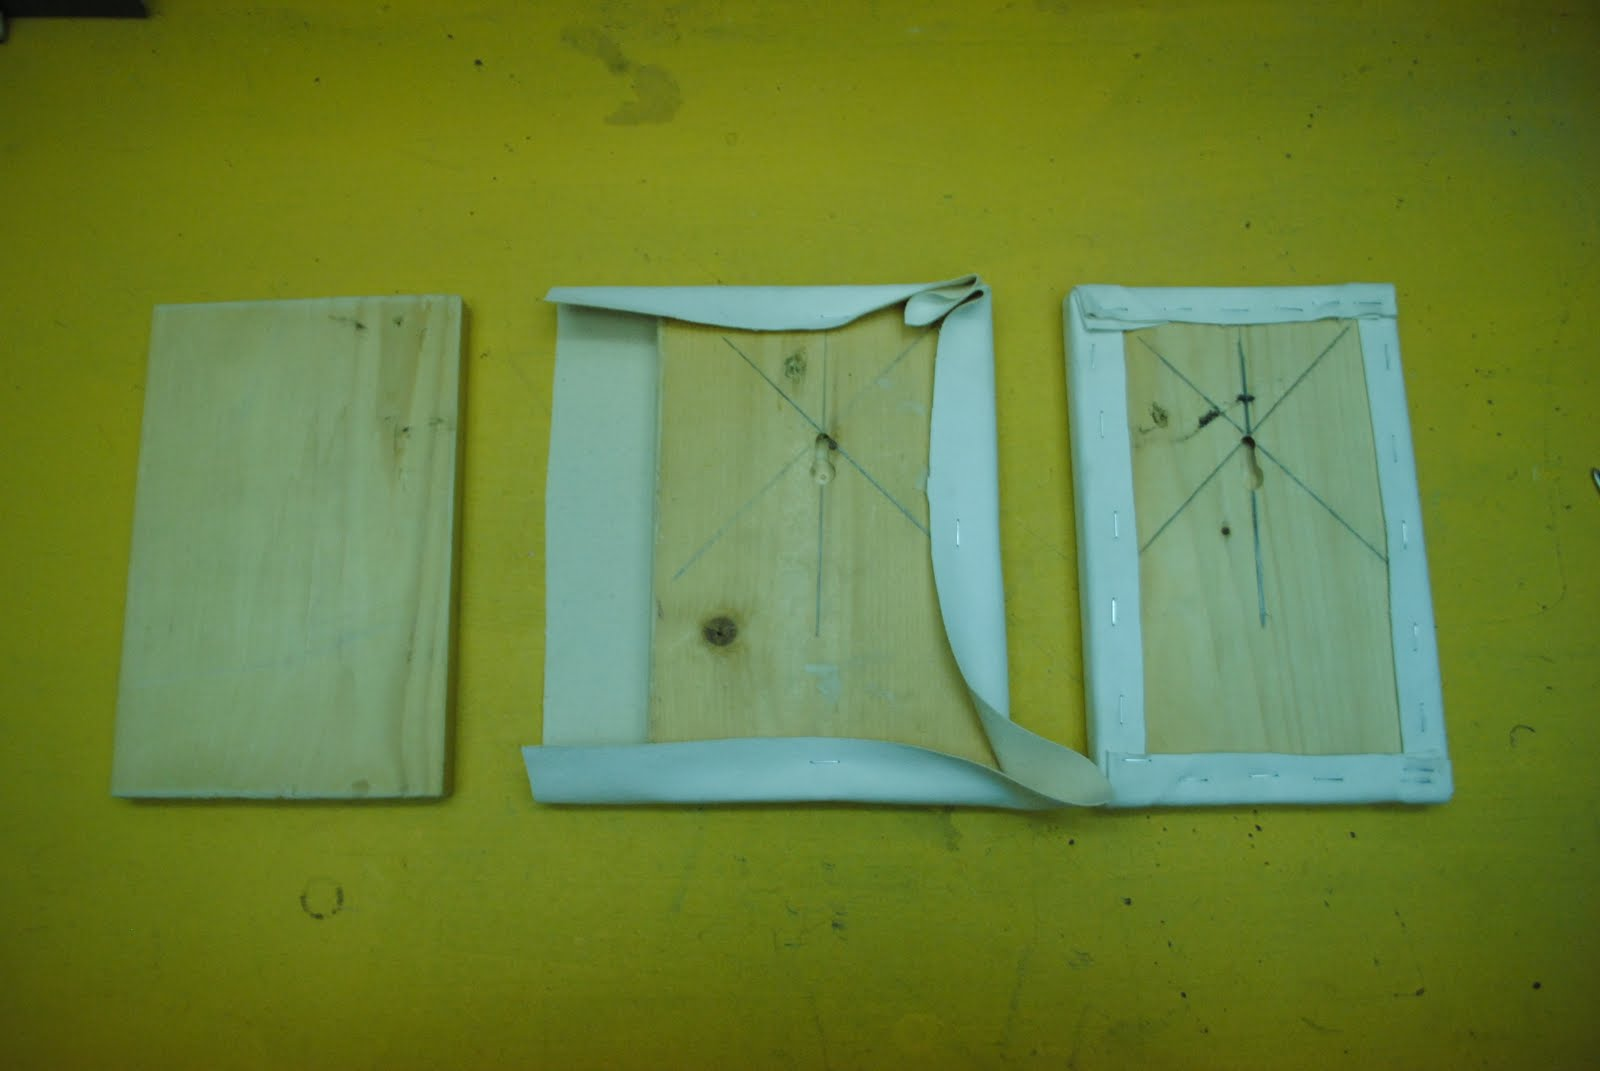 if you have a workshop and want to get a little cheaper you can cut frames yourself for small canvases you can cut boards from scrap wood and cover them